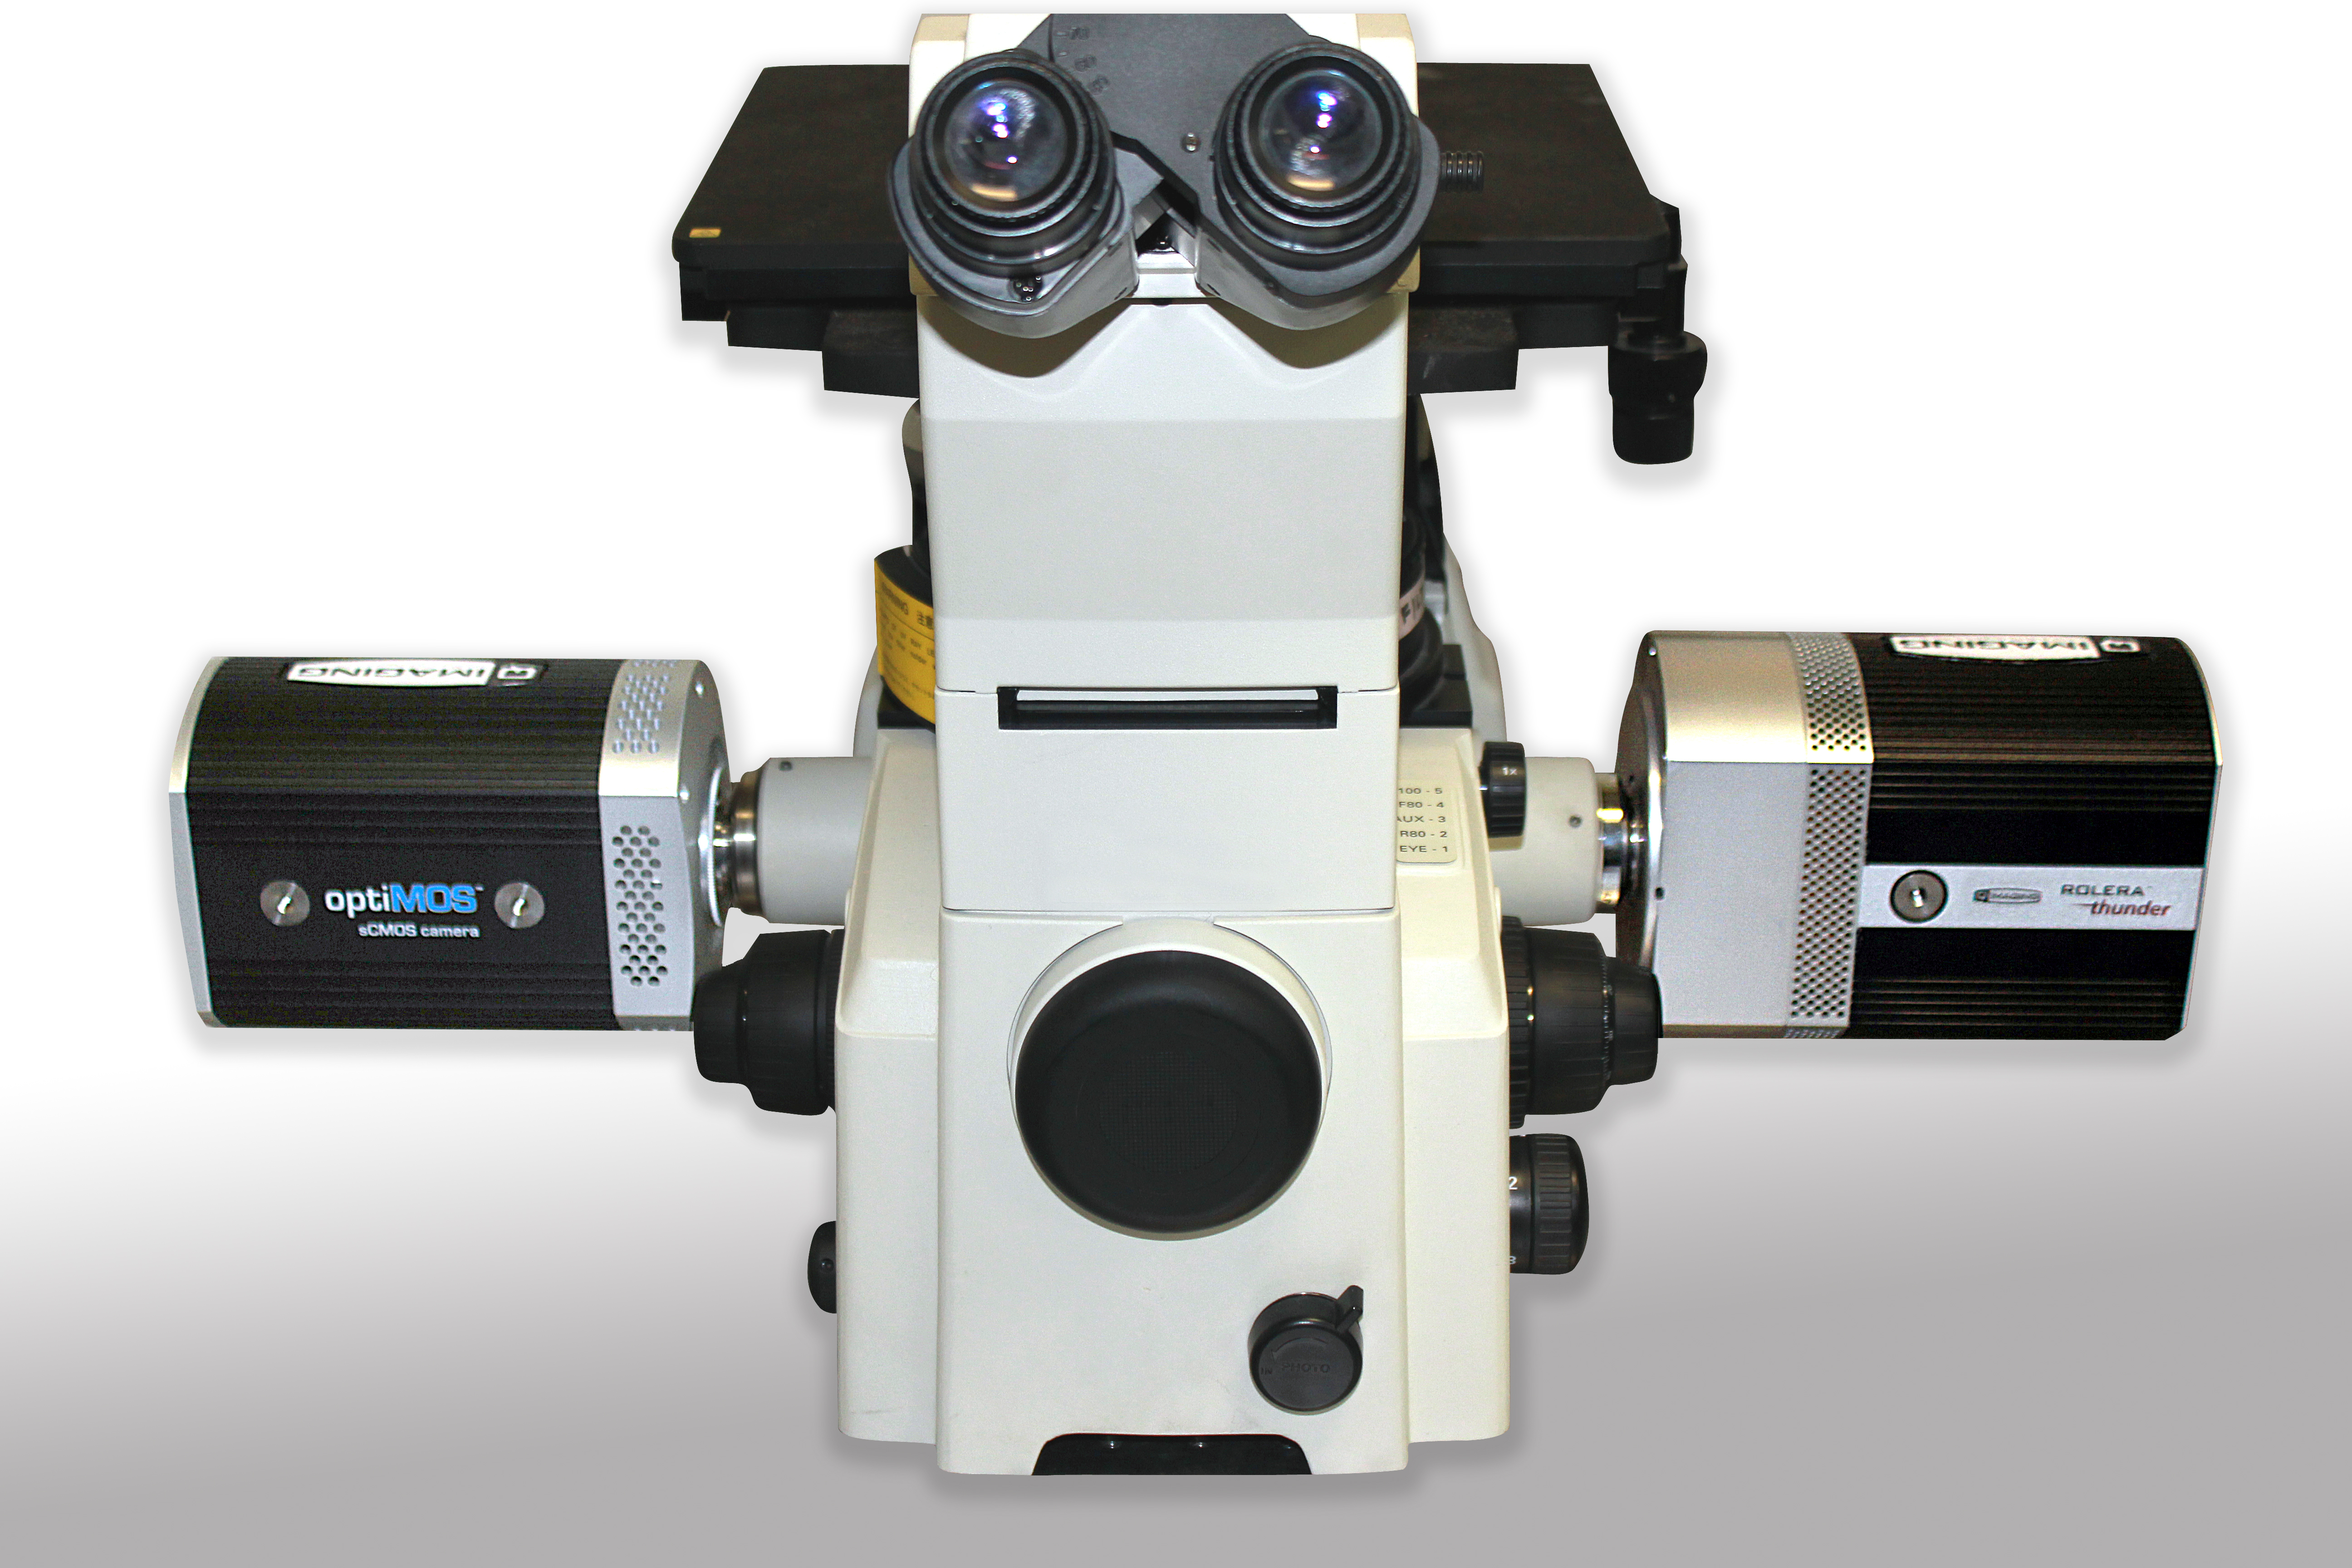 The Live Cell Imaging Package provides researchers with the sensitivity of EMCCD and the versatility of sCMOS camera technologies. (Photo: Business Wire)